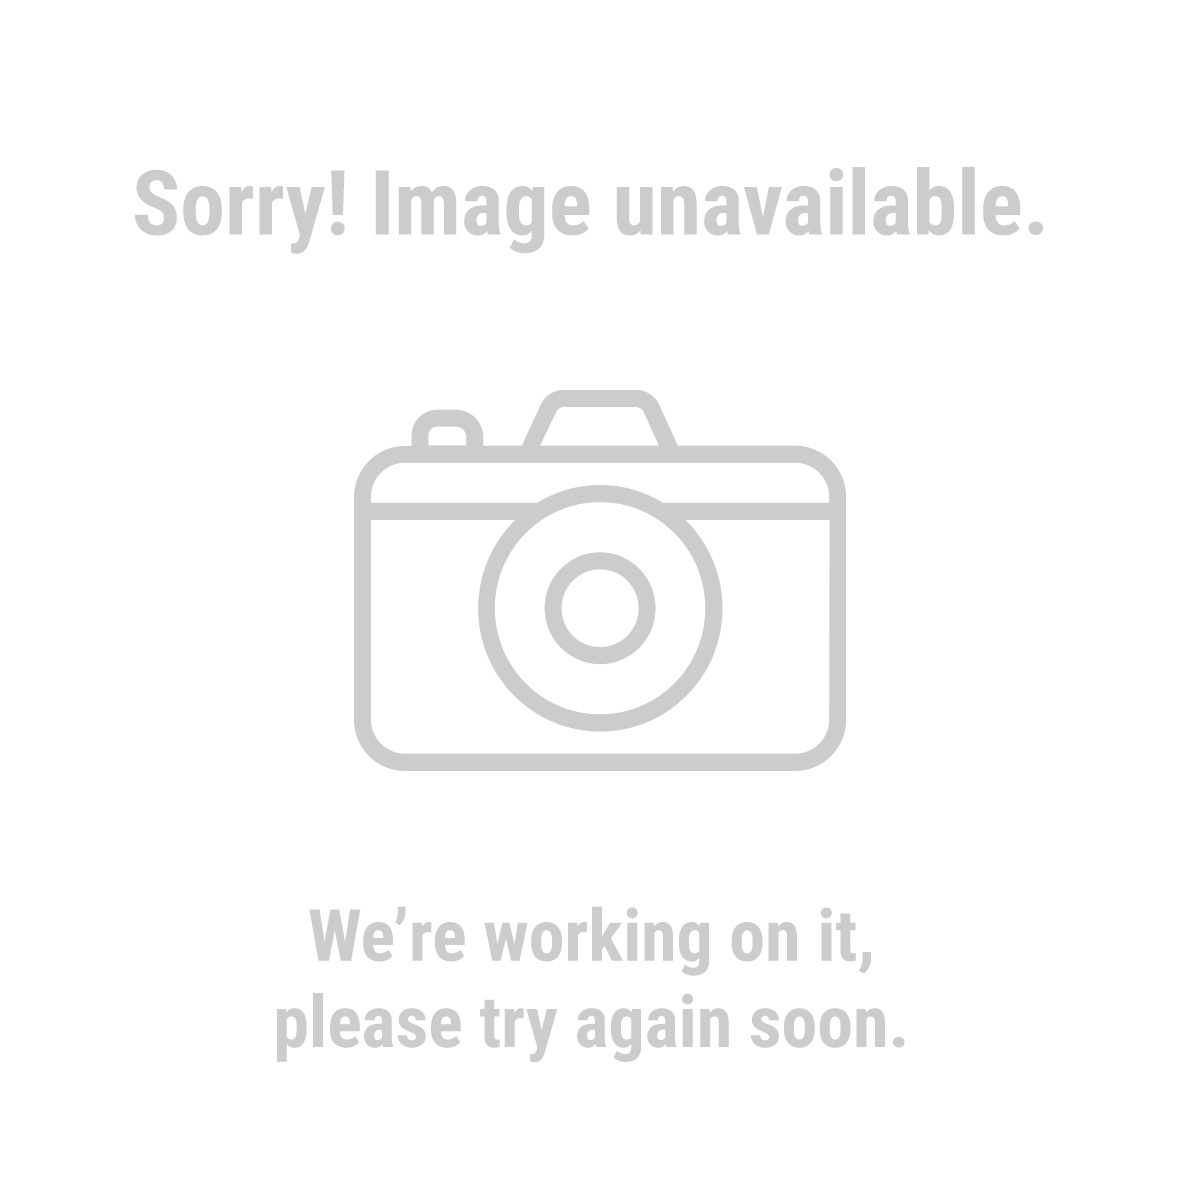 inspirational harbor freight portable garage product review set up harbor freight portable garage images 504